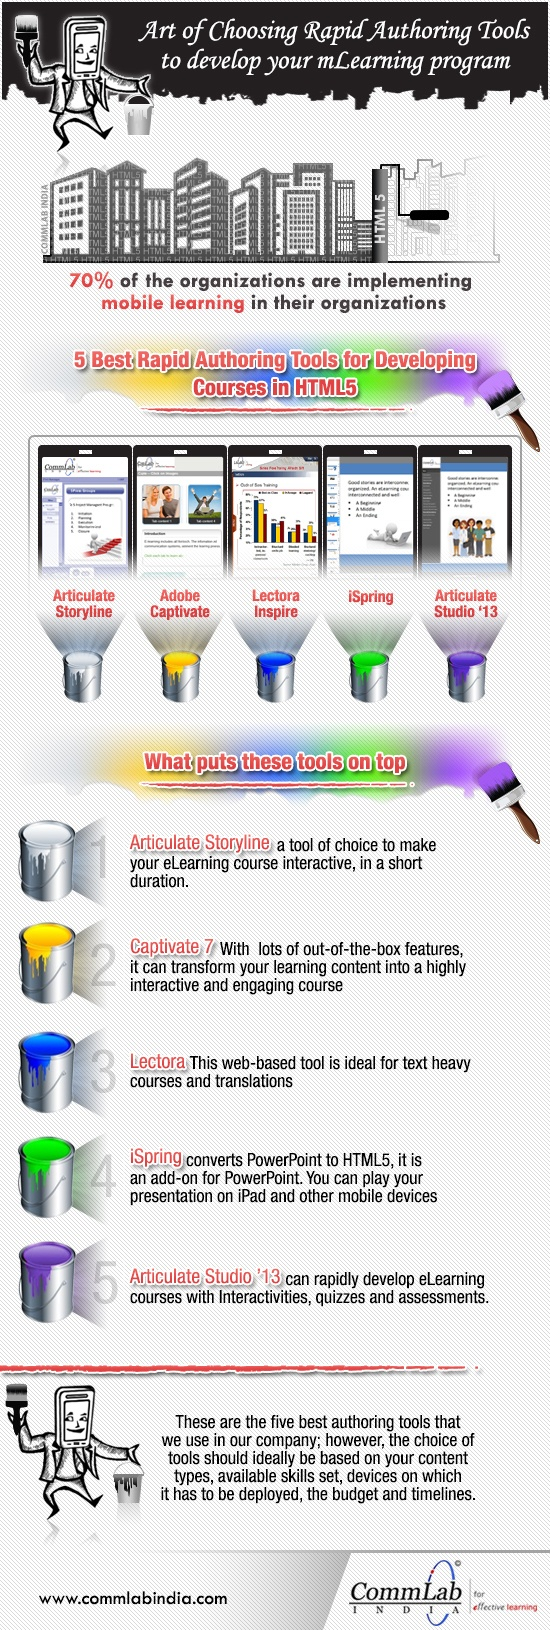 Authoring Tools to Develop mLearning Courses Infographic